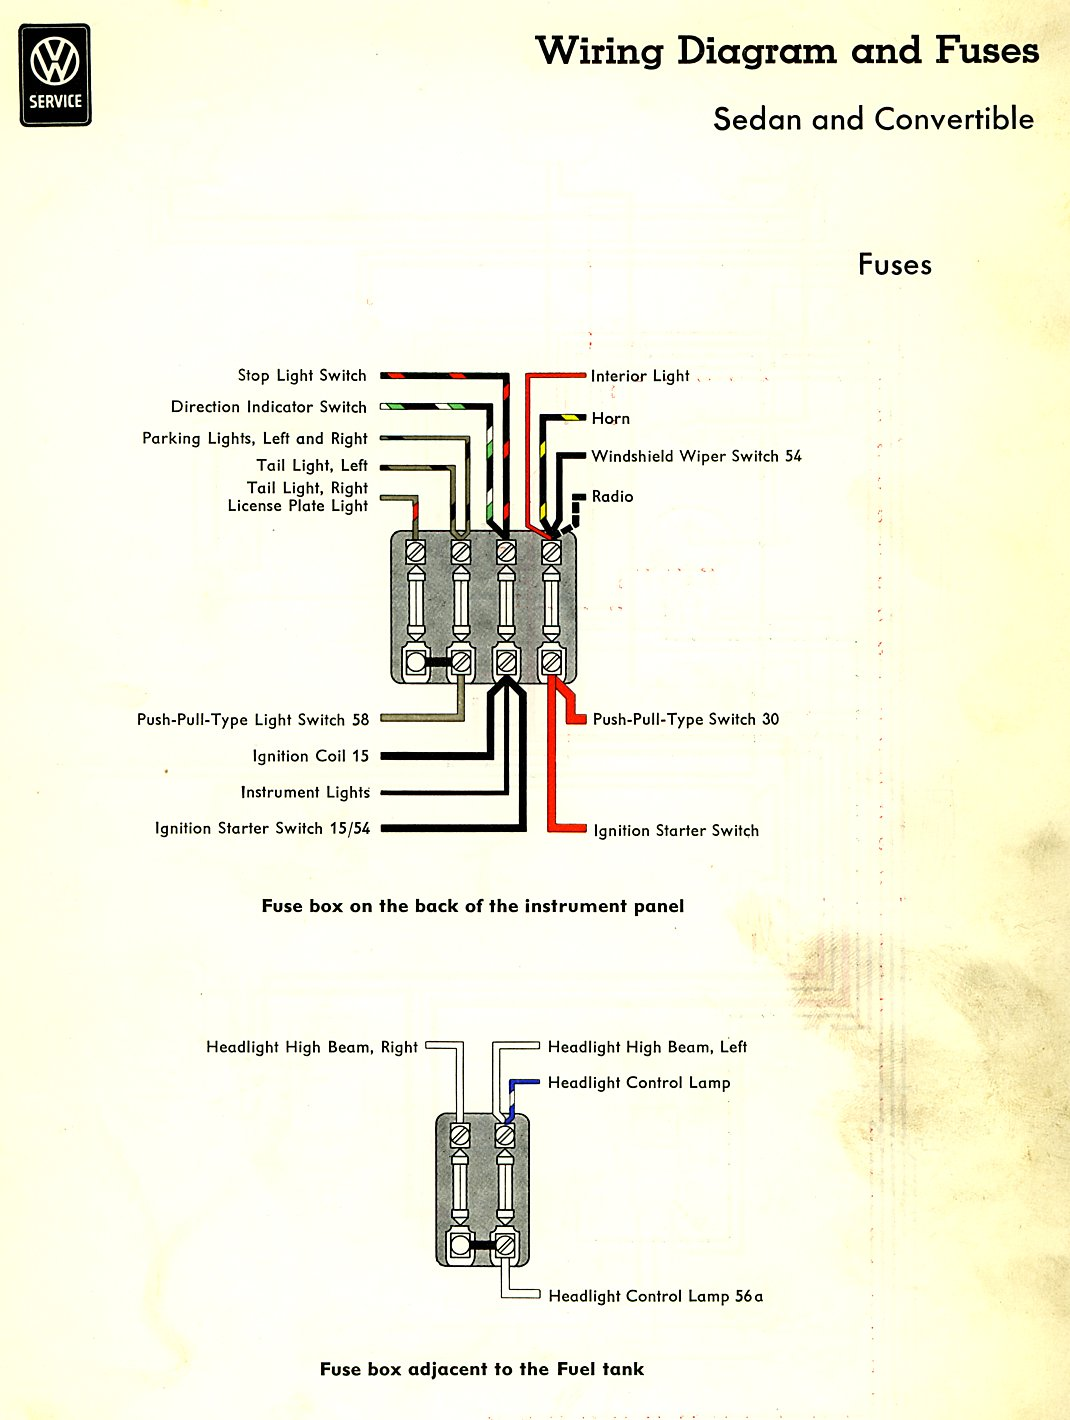 1966 beetle wiring diagram thegoldenbug com 14 Circuit Rat Rod VW Wiring Diagram